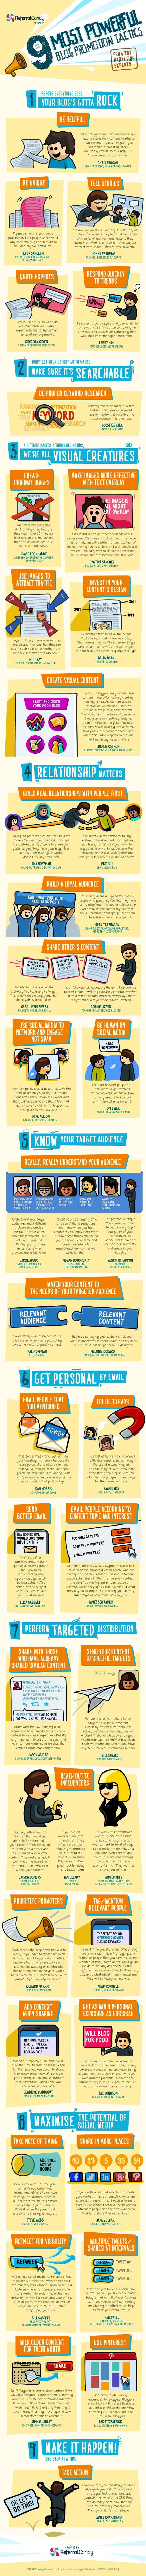 The 9 Most Powerful Blog Promotion Tactics From Top Marketing Experts [Infographic] - ReferralCandy